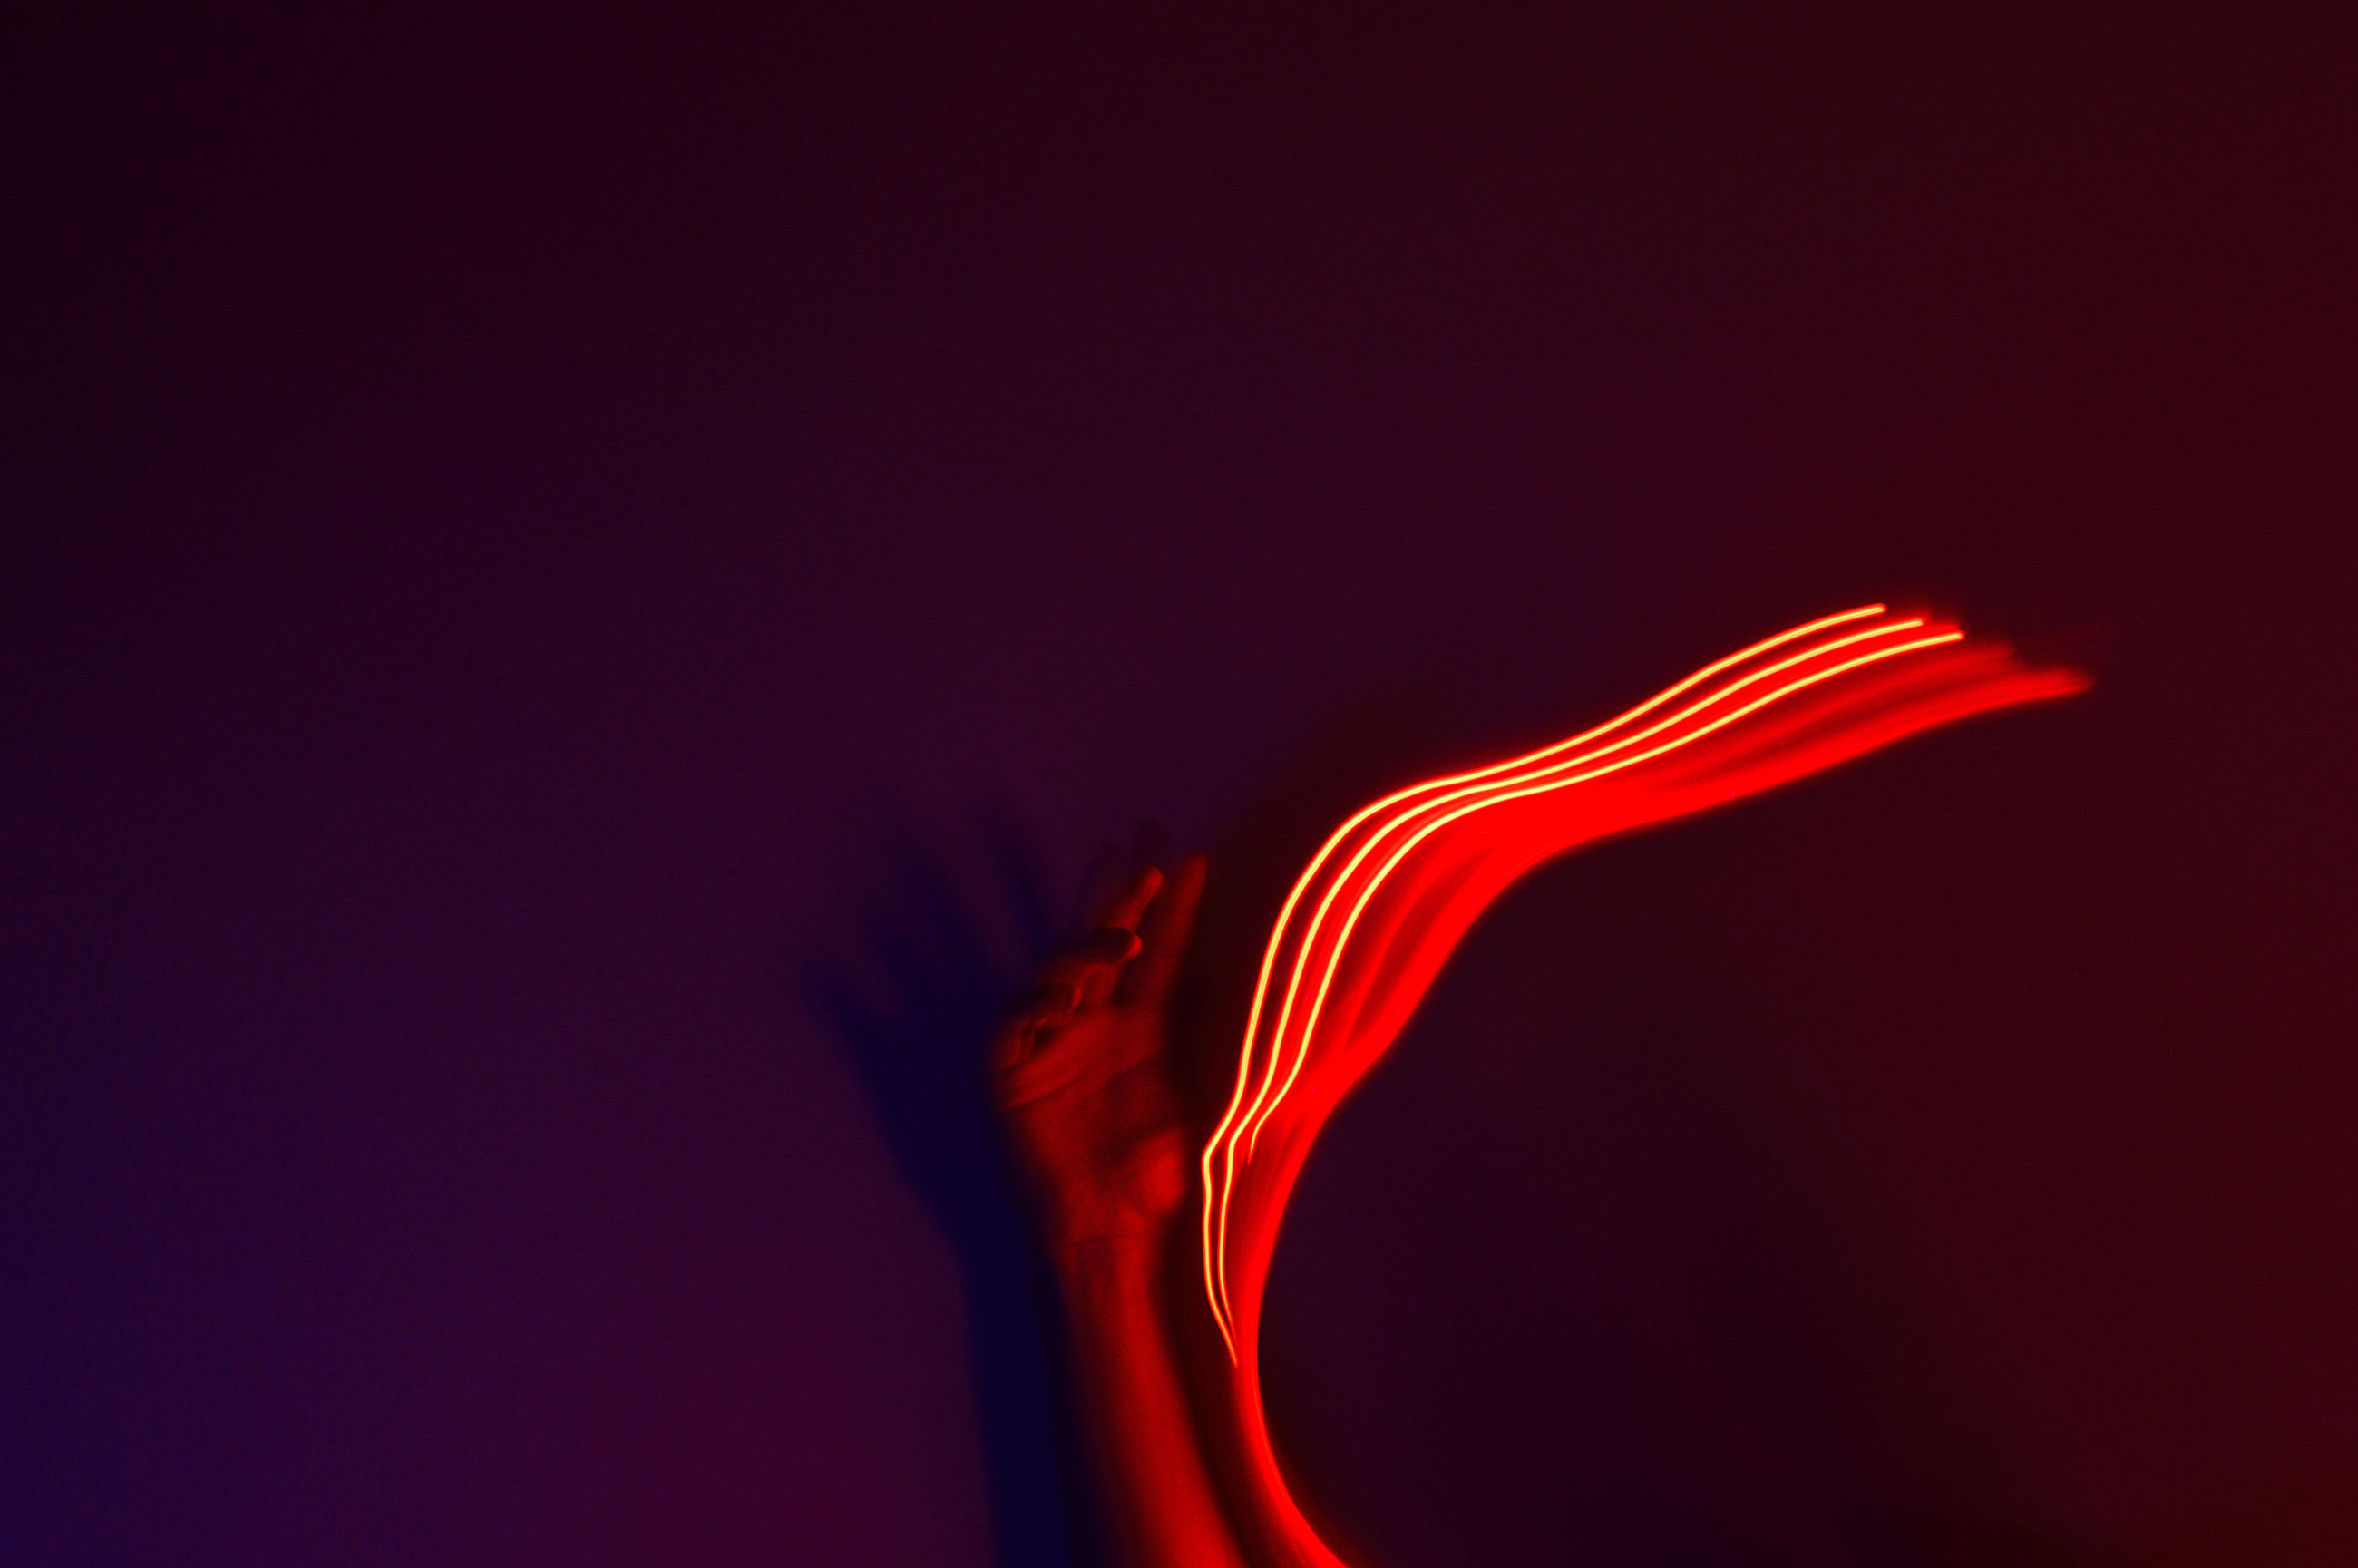 red, studio shot, motion, indoors, copy space, no people, close-up, nature, glowing, colored background, cut out, heat - temperature, illuminated, abstract, black background, creativity, orange color, long exposure, pattern, smoke - physical structure